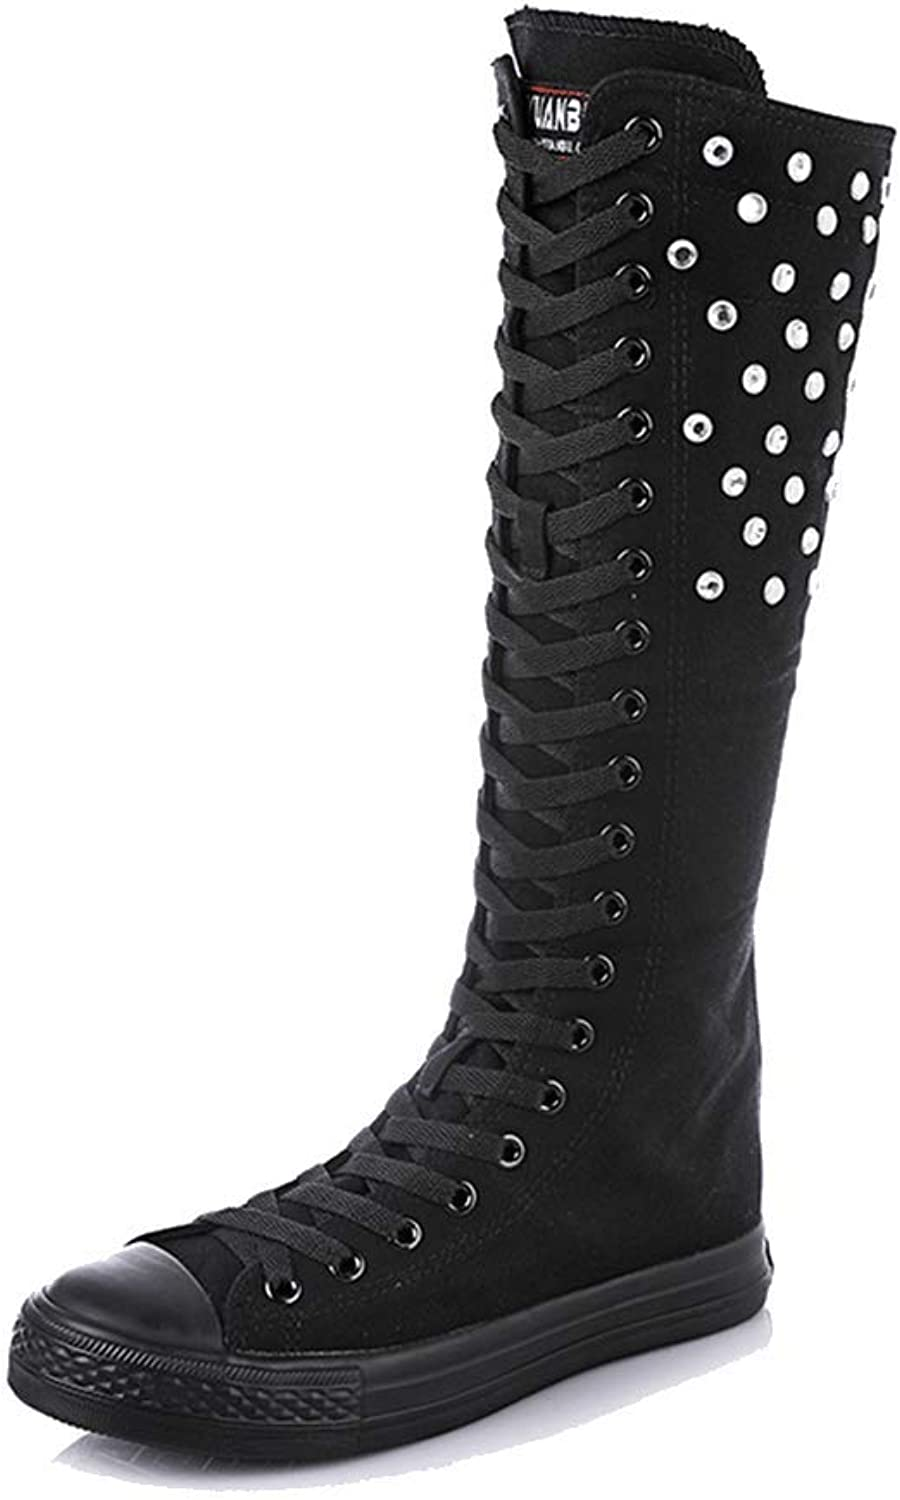 LIURUIJIA Women Knee High Lace-up Canvas Boots Pure Zip Dance Boots DX5-5570-01